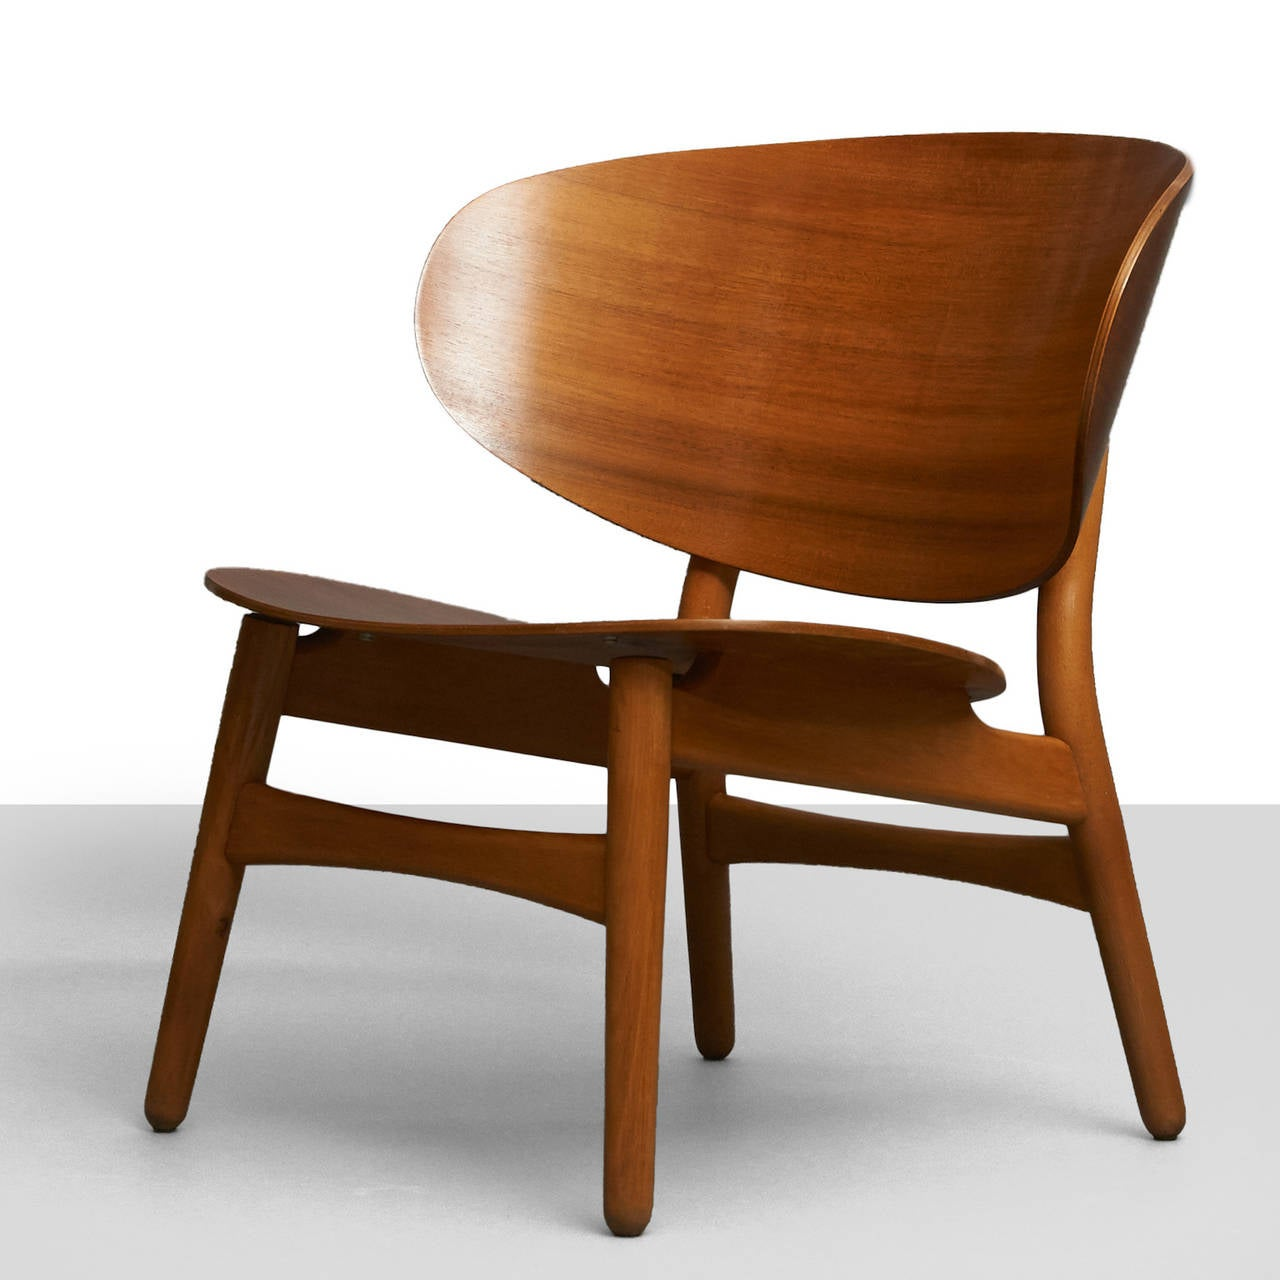 A shell lounge chair by Hans Wegner. Features an oversized, laminated teak back and a maple frame with tapered legs. Retains original label.